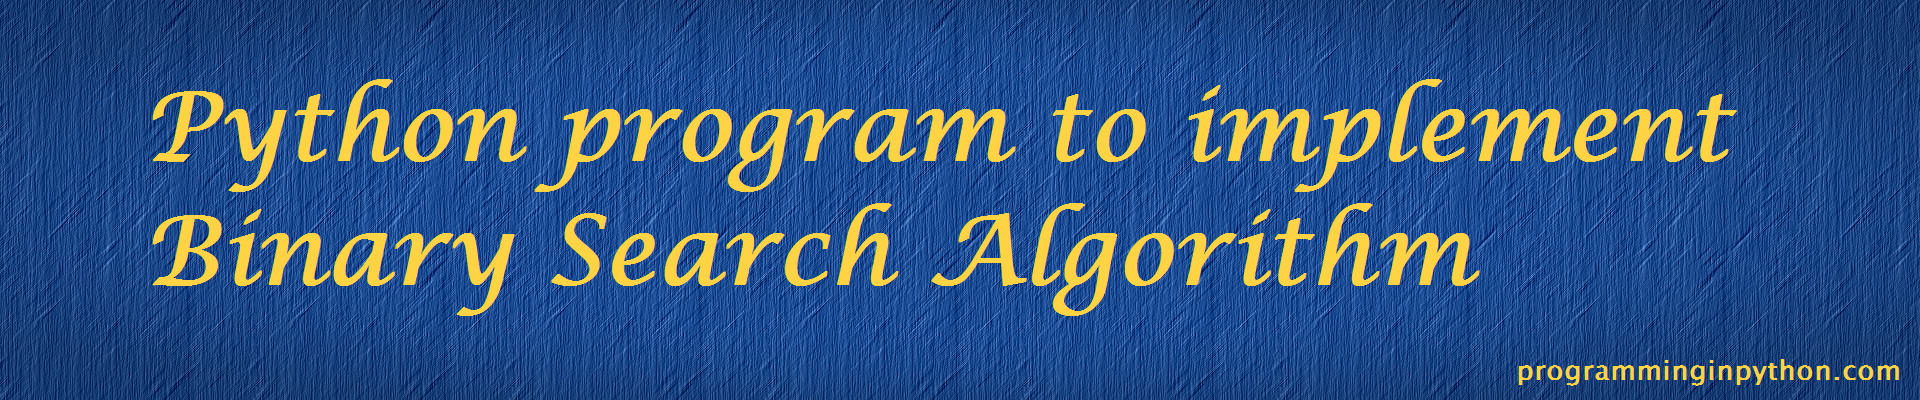 Python program to implement Binary Search Algorithm